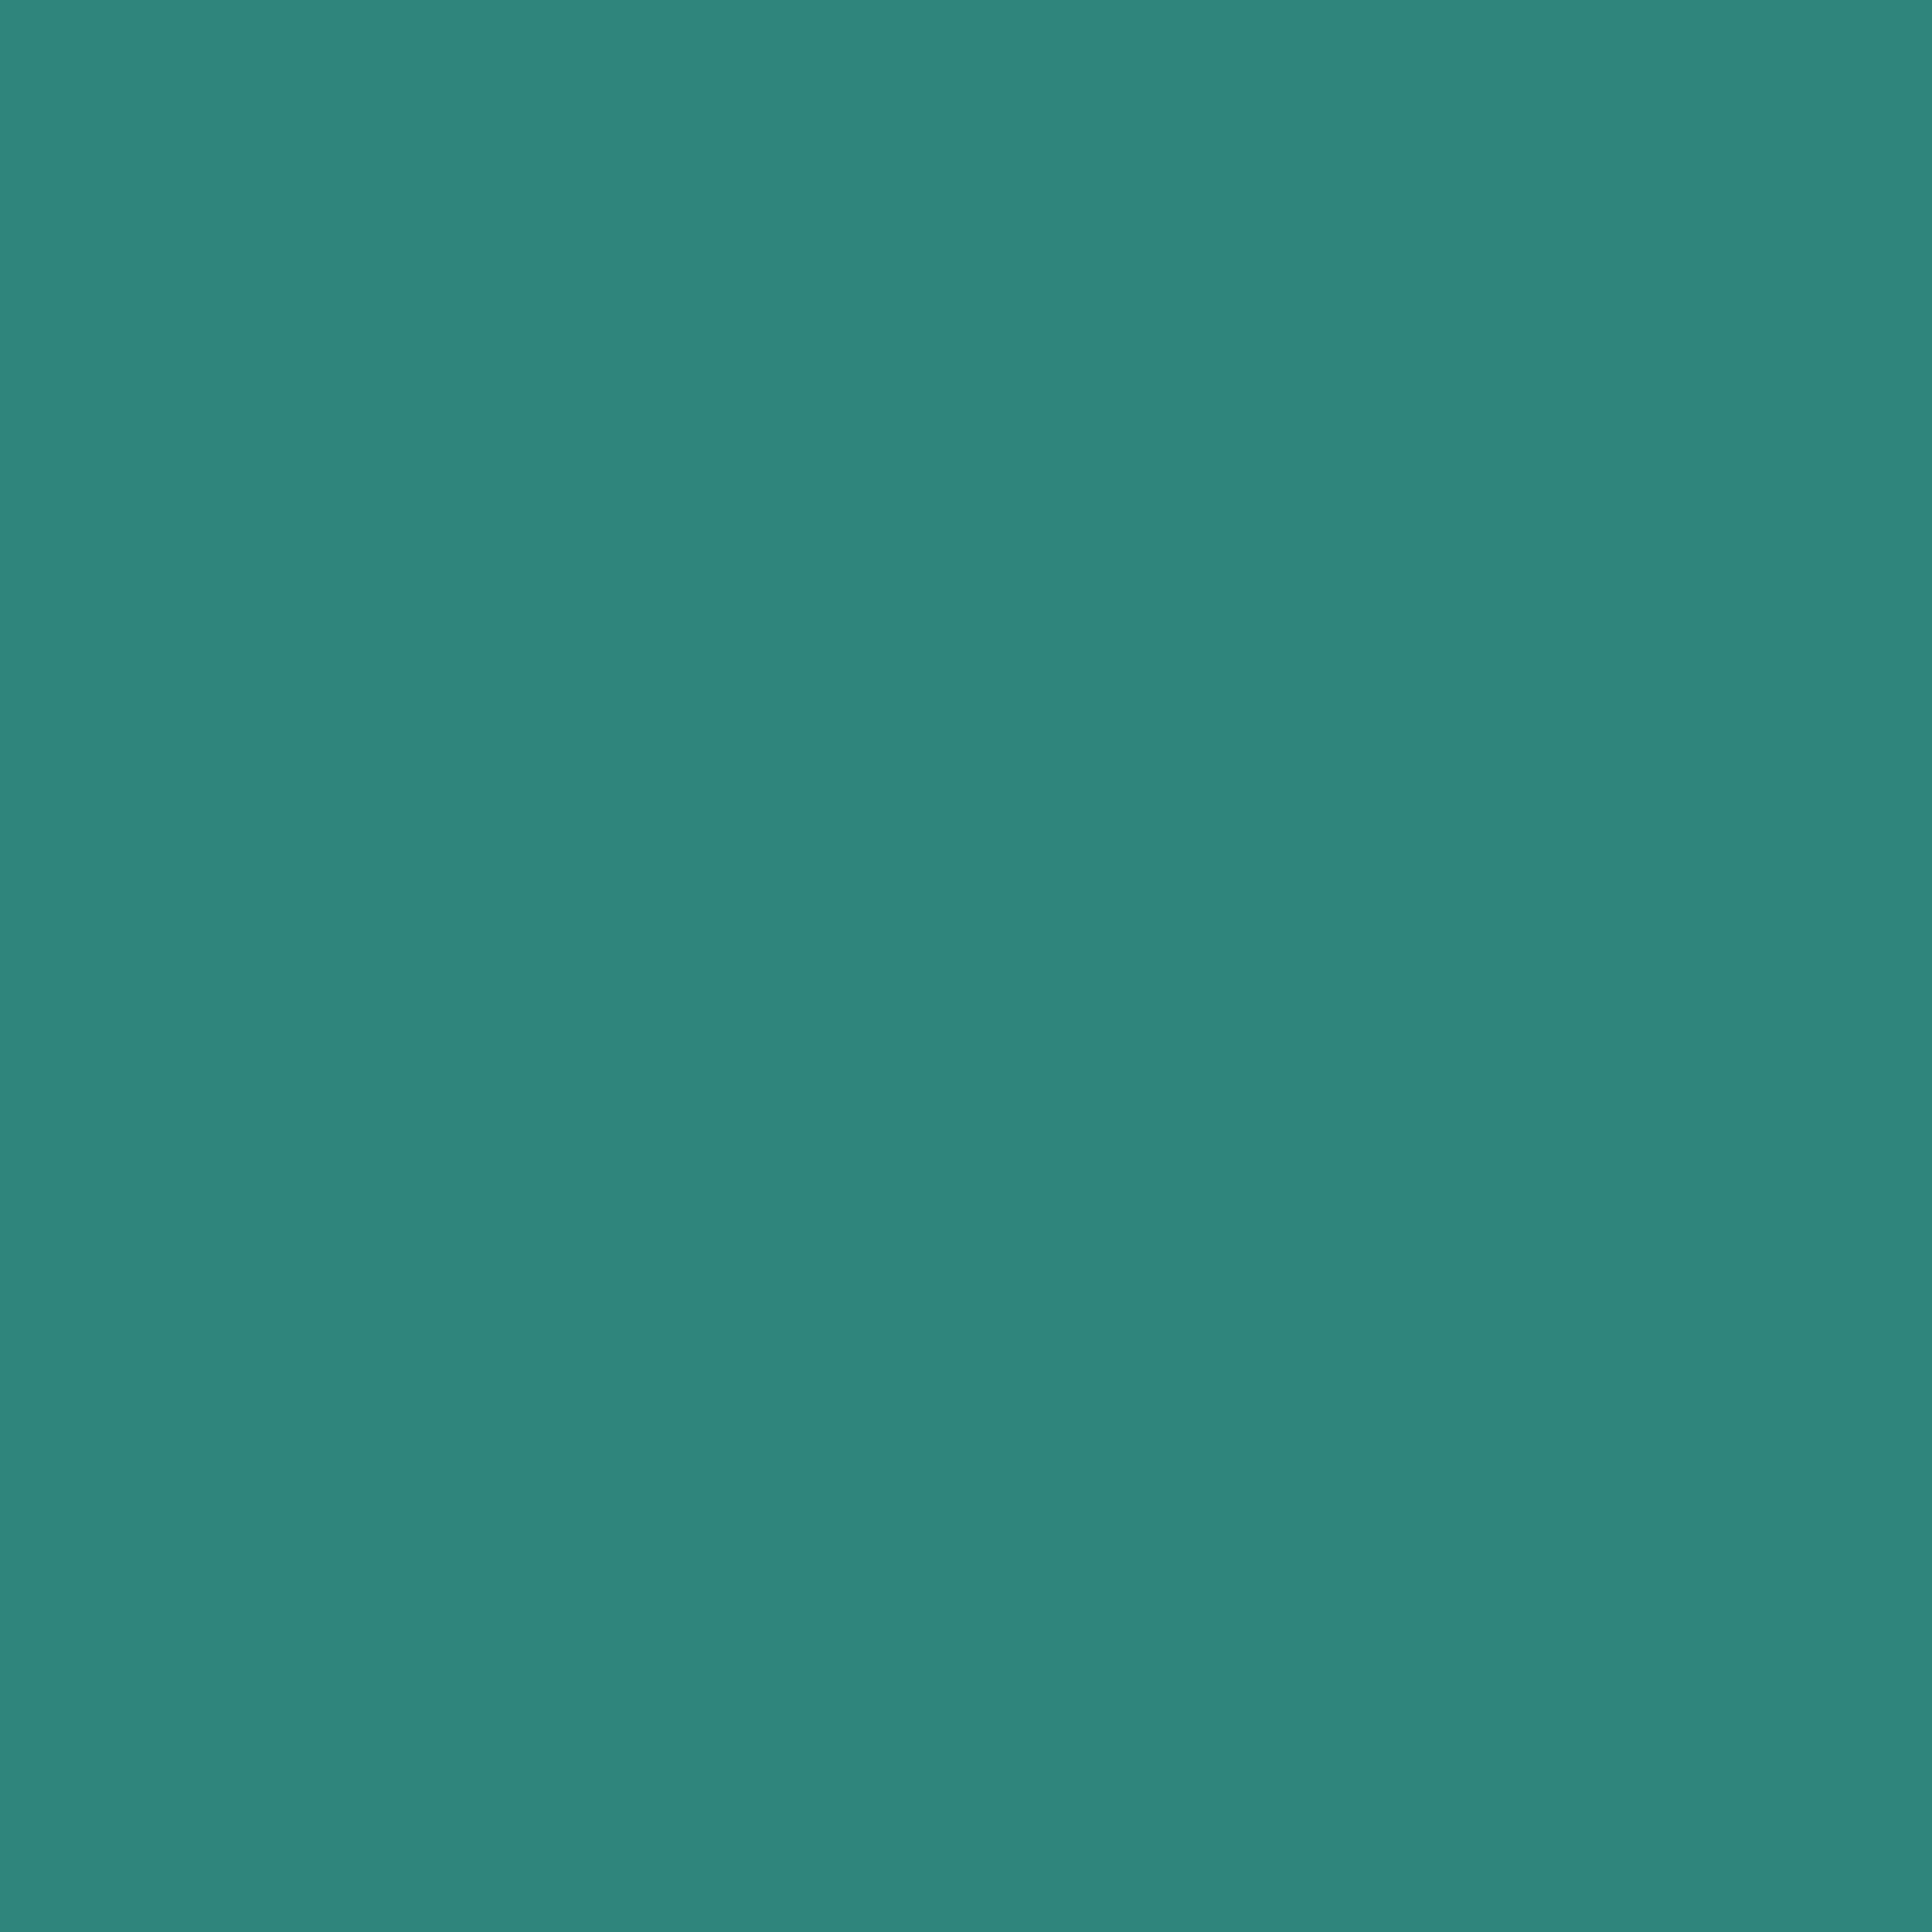 2048x2048 Celadon Green Solid Color Background